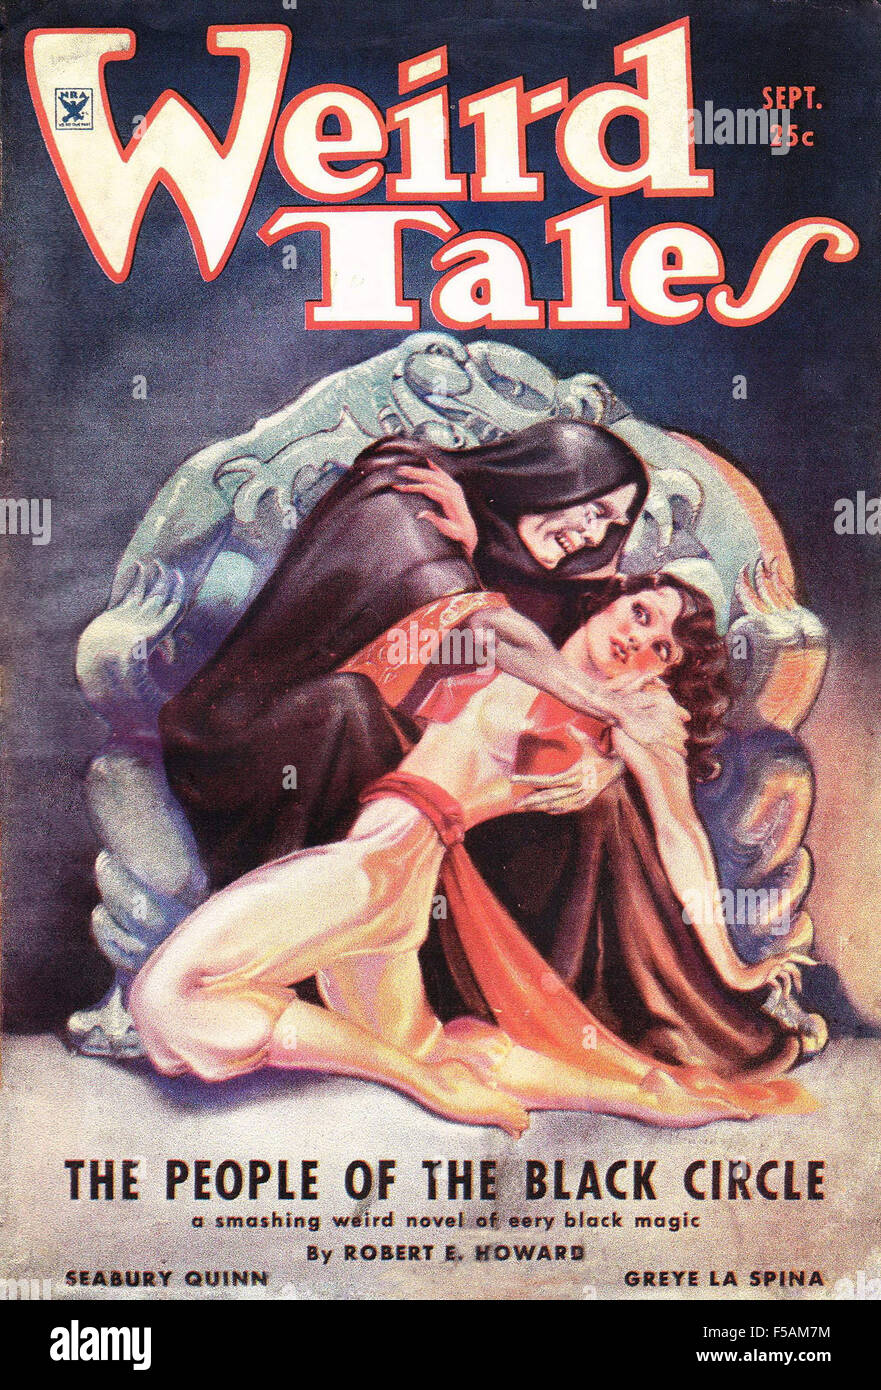 WEIRD TALES September 1934 cover of the American science fiction magazine - Stock Image